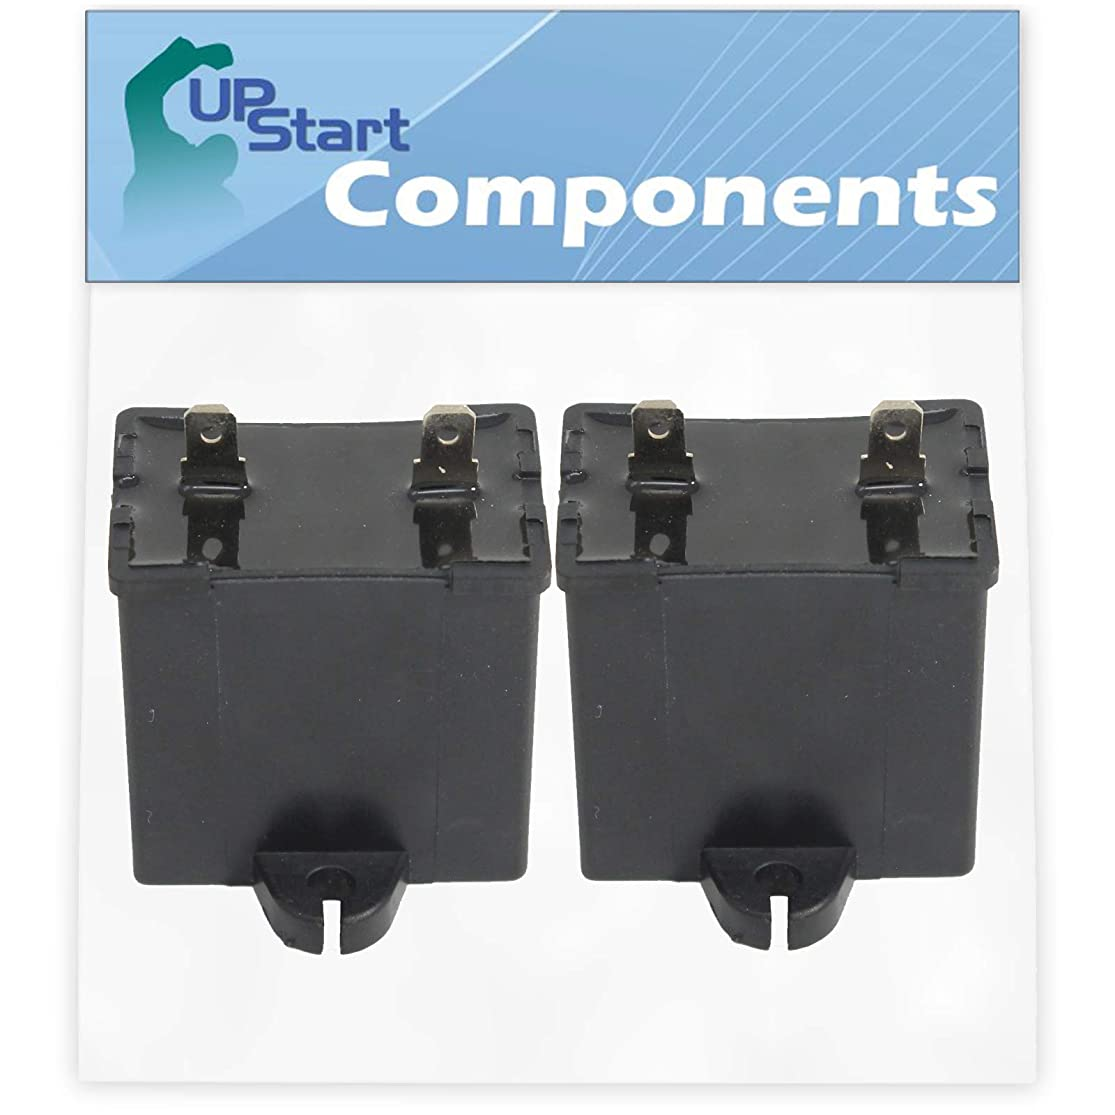 2-Pack W10662129 Refrigerator and Freezer Compressor Run Capacitor Replacement for Magic Chef RB23JA-4AL (9A86A) Refrigerator - Compatible with 2169373 WPW10662129 Run Capacitor frtpvvxz6